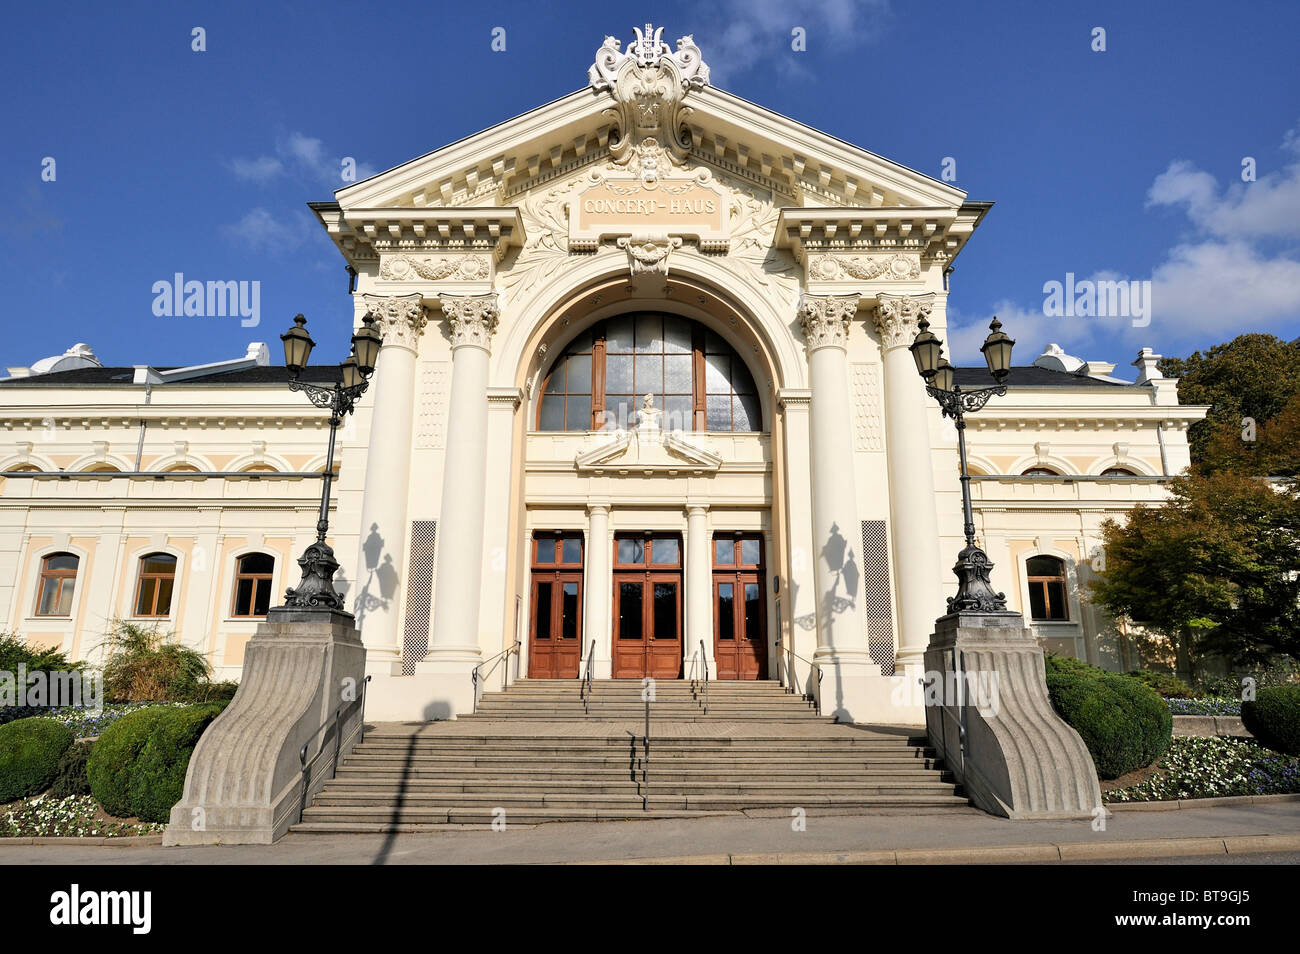 Concert hall in Ravensburg, a significant historical building of the late 19th century, Ravensburg county, Baden - Stock Image